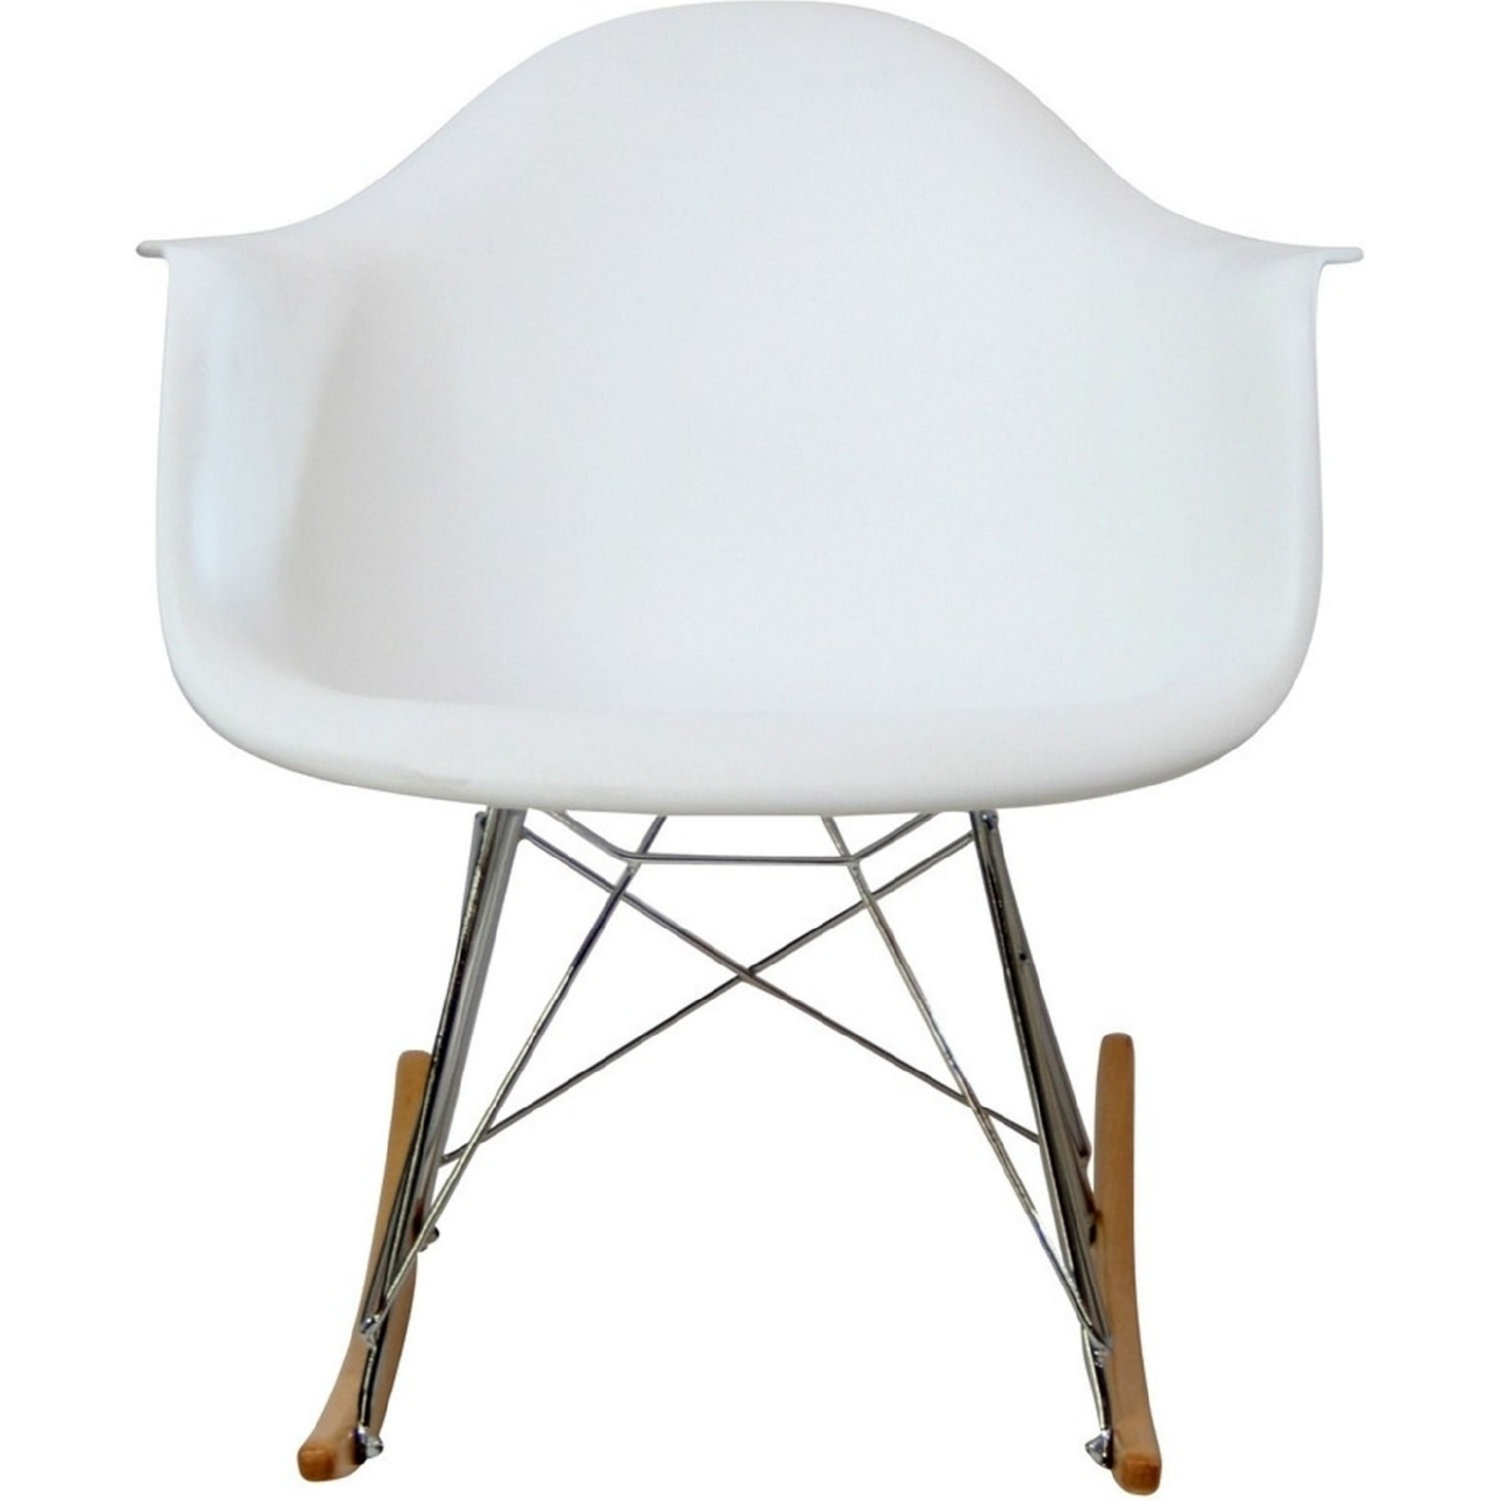 Accent Chair In White Plastic W/ Chrome Finish - image-1